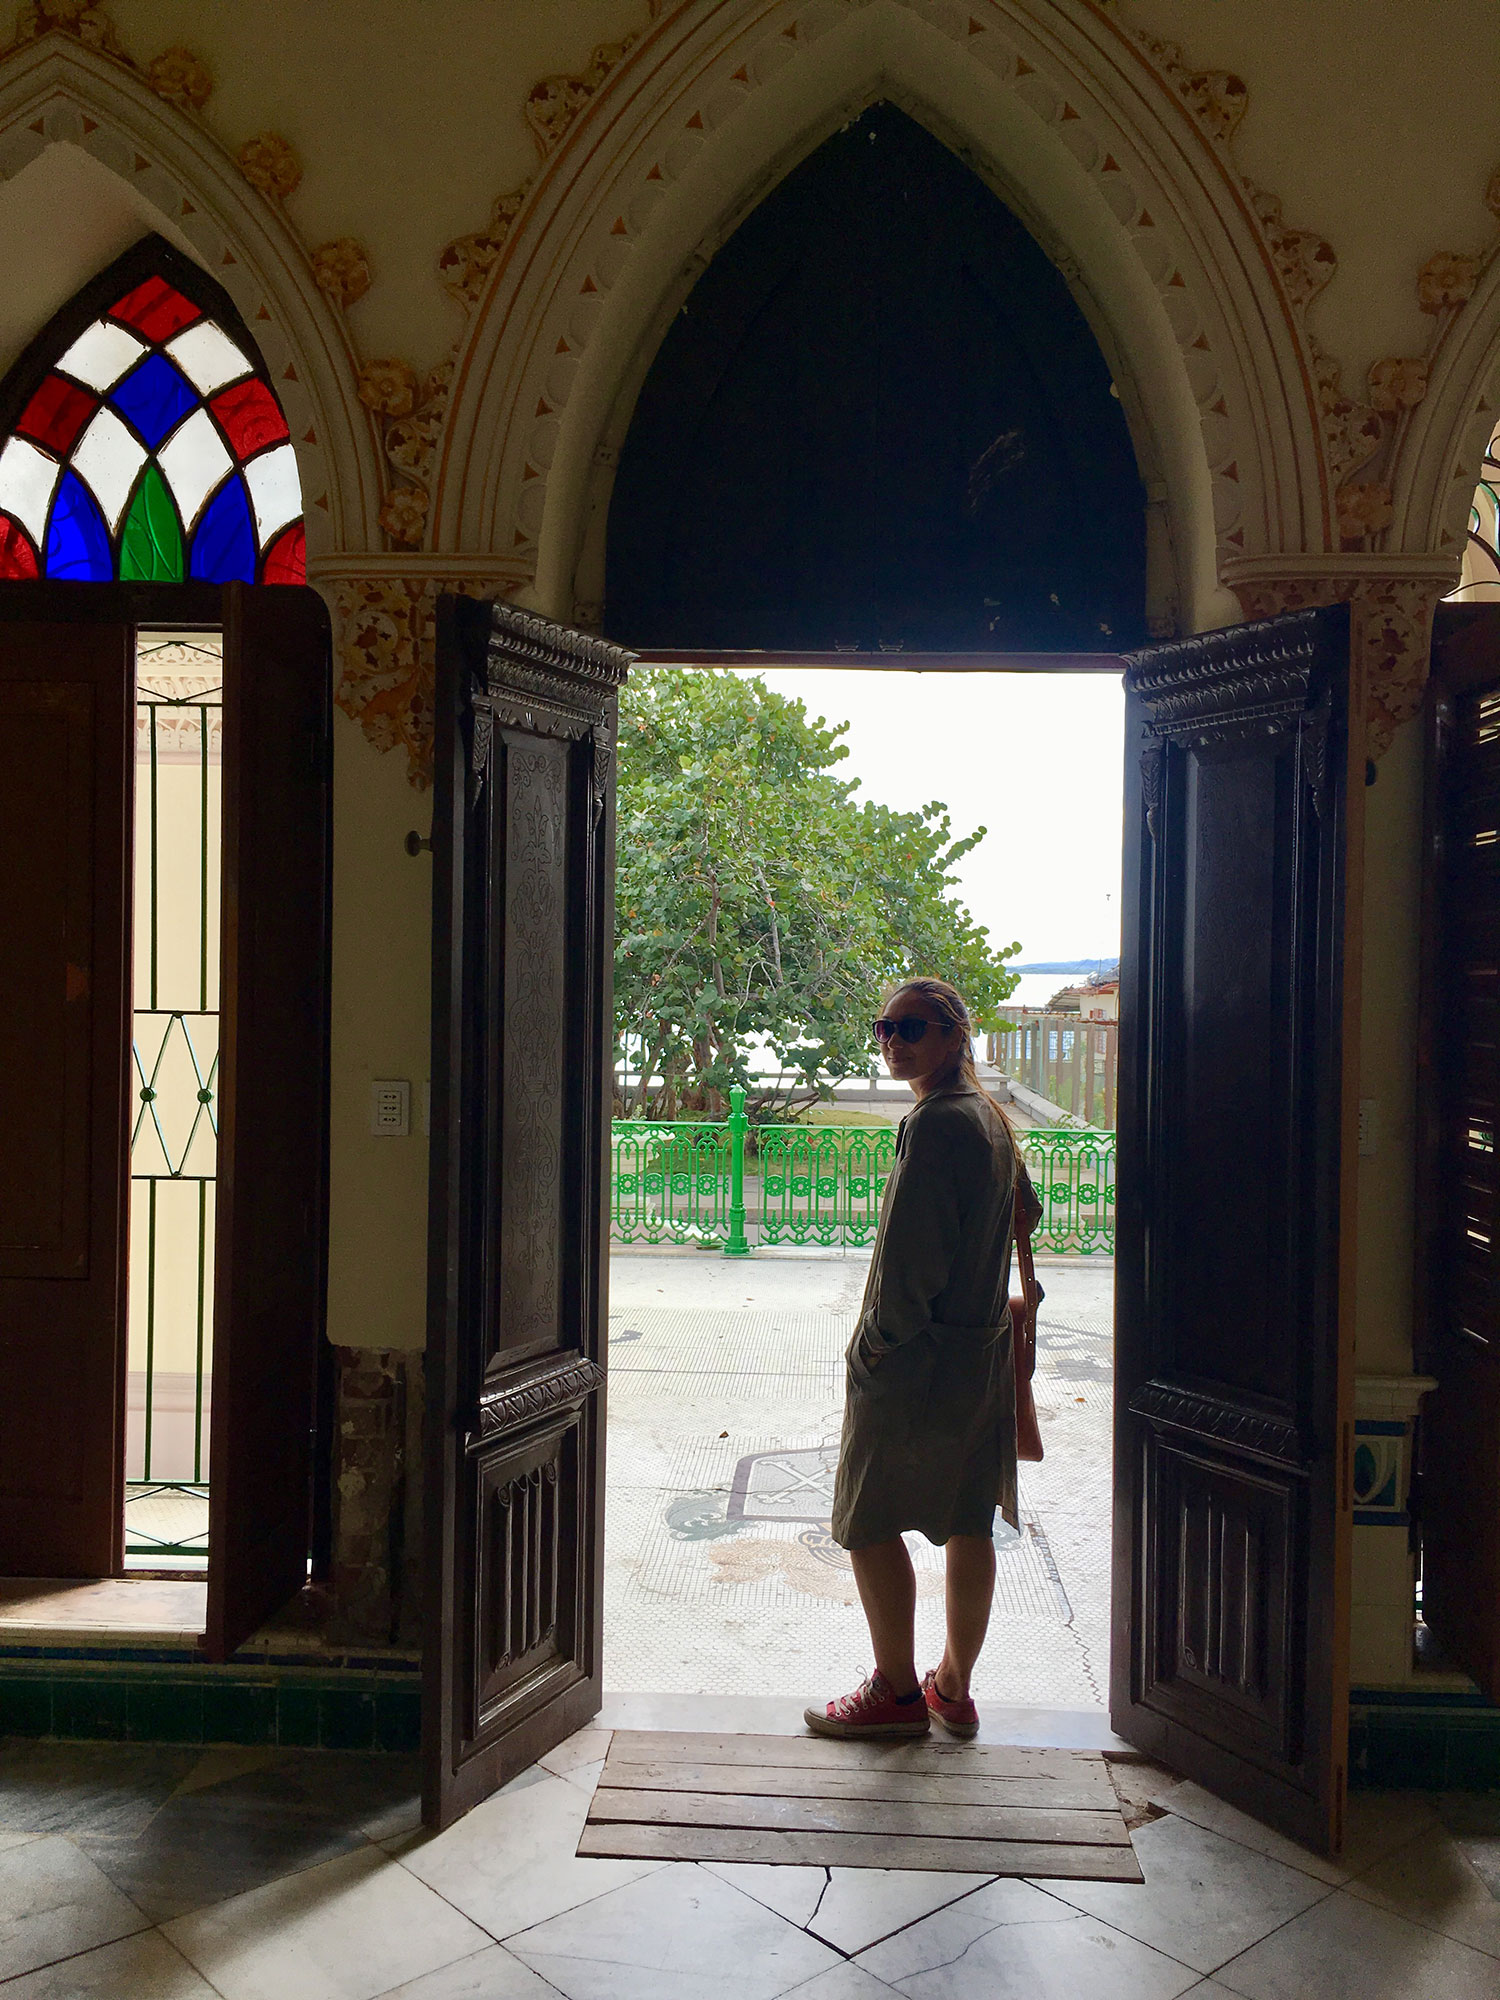 My co-traveller Daniela at one of the entry doors.